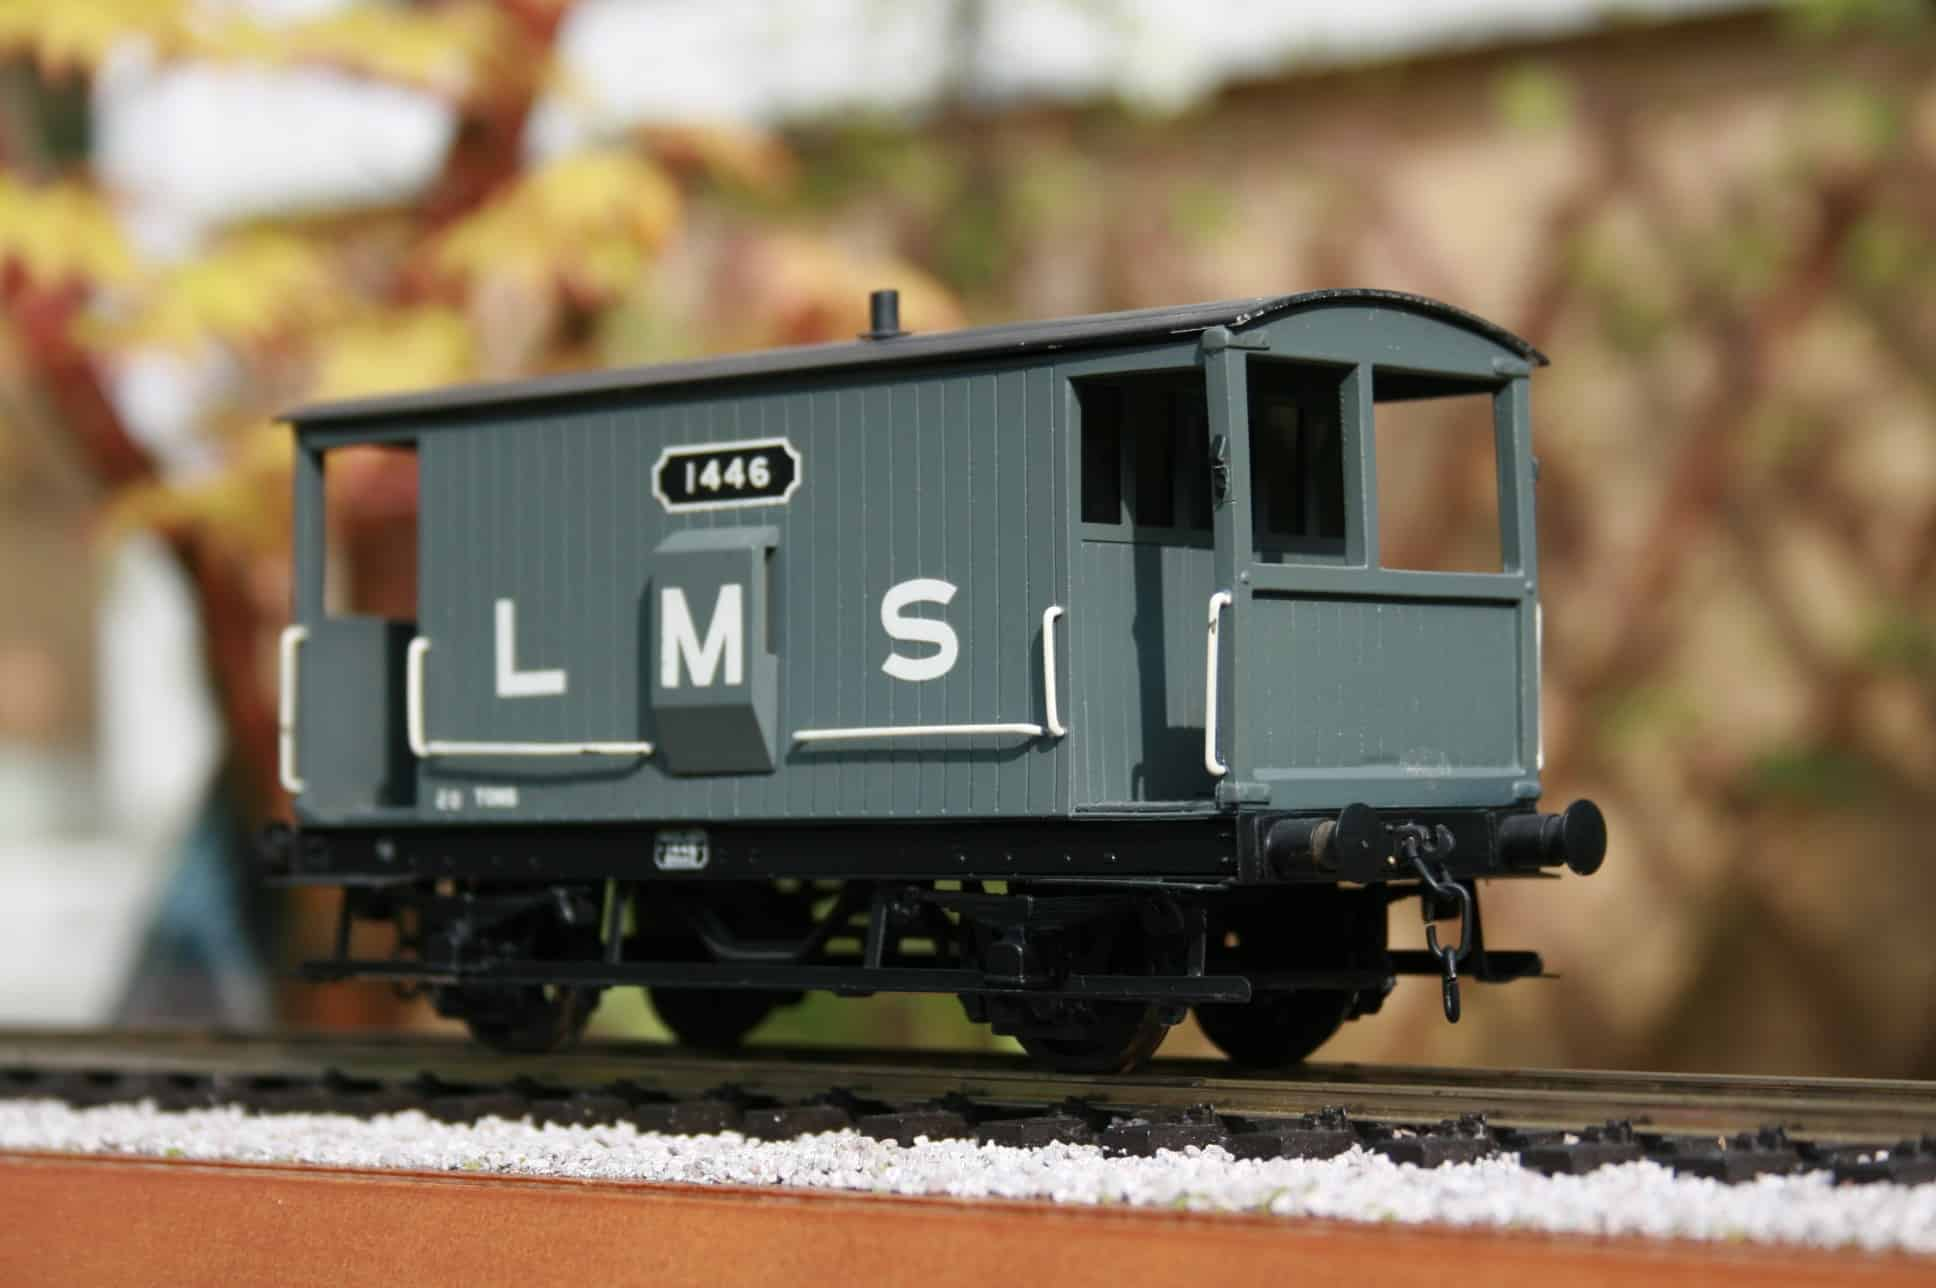 LMS (Ex.MR) 20 ton Brake Van r/n 1446